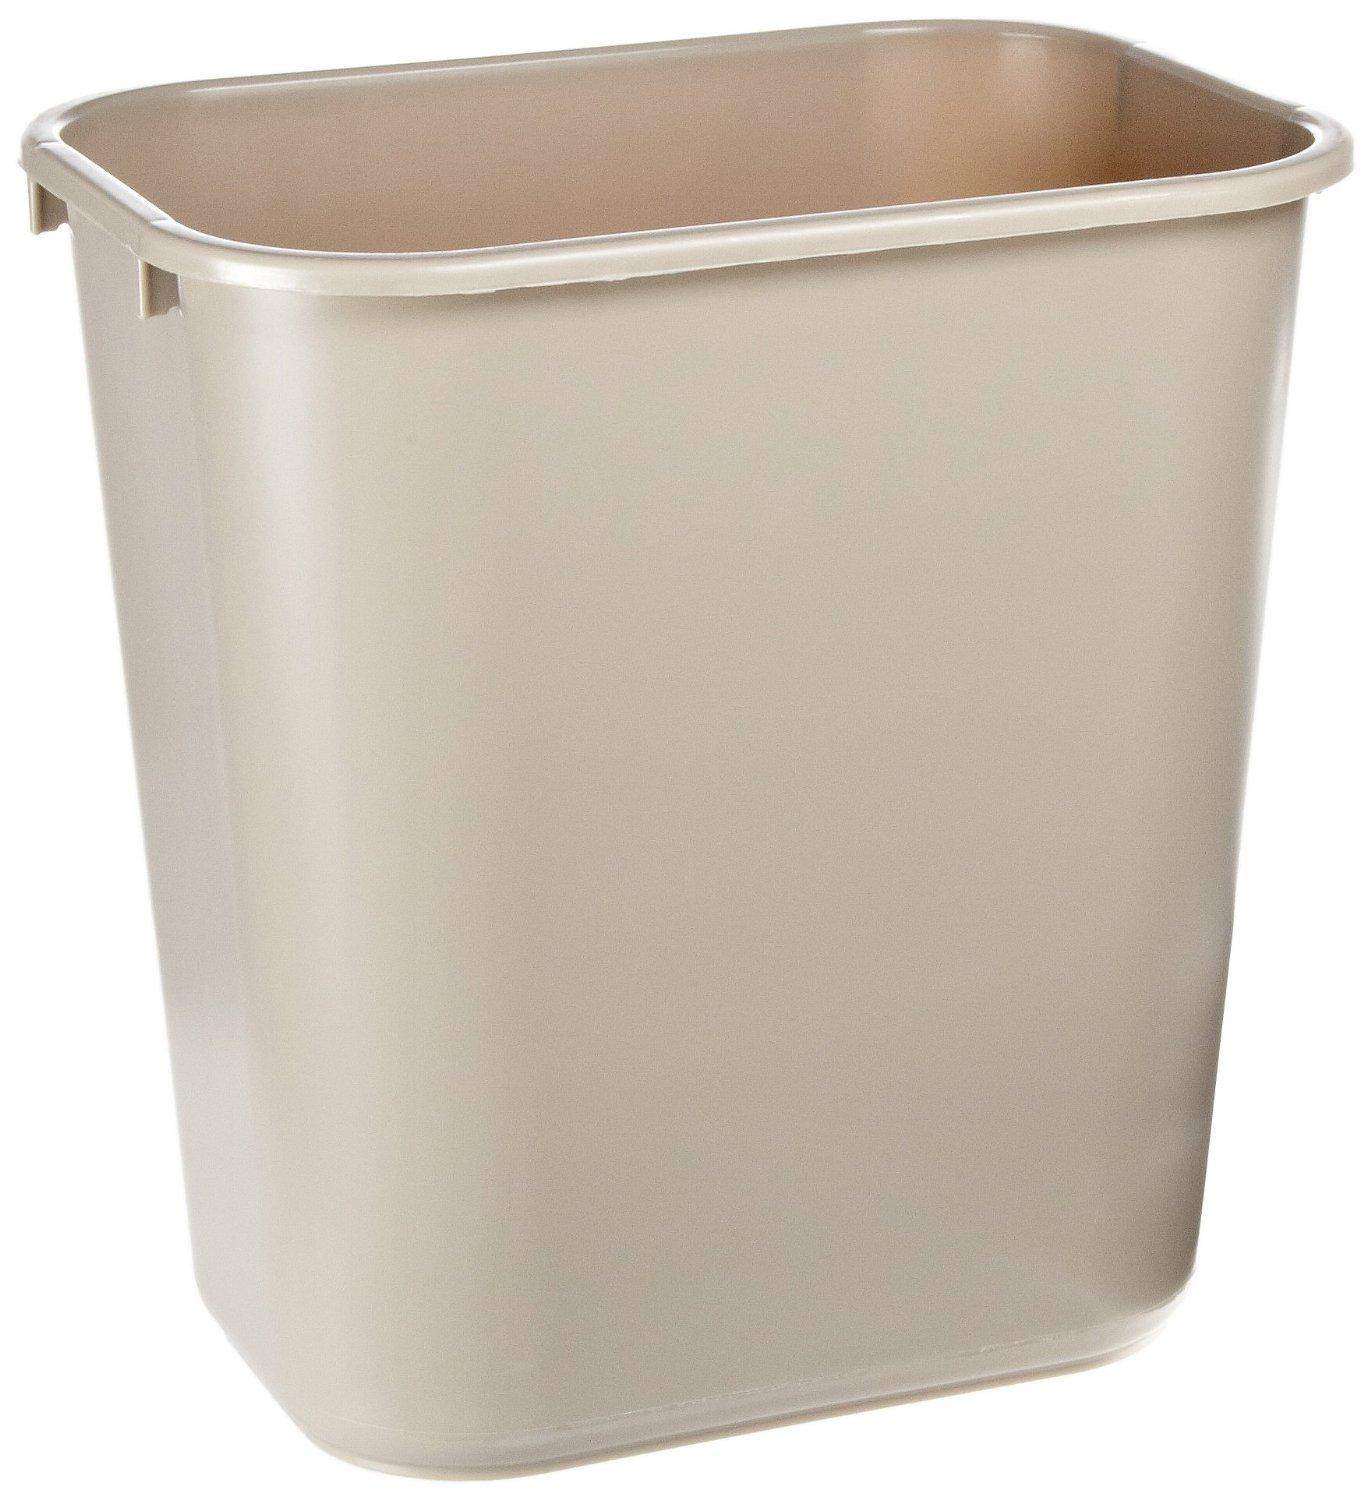 $4.12 Rubbermaid Commercial Plastic 7-Gallon Trash Can, Beige